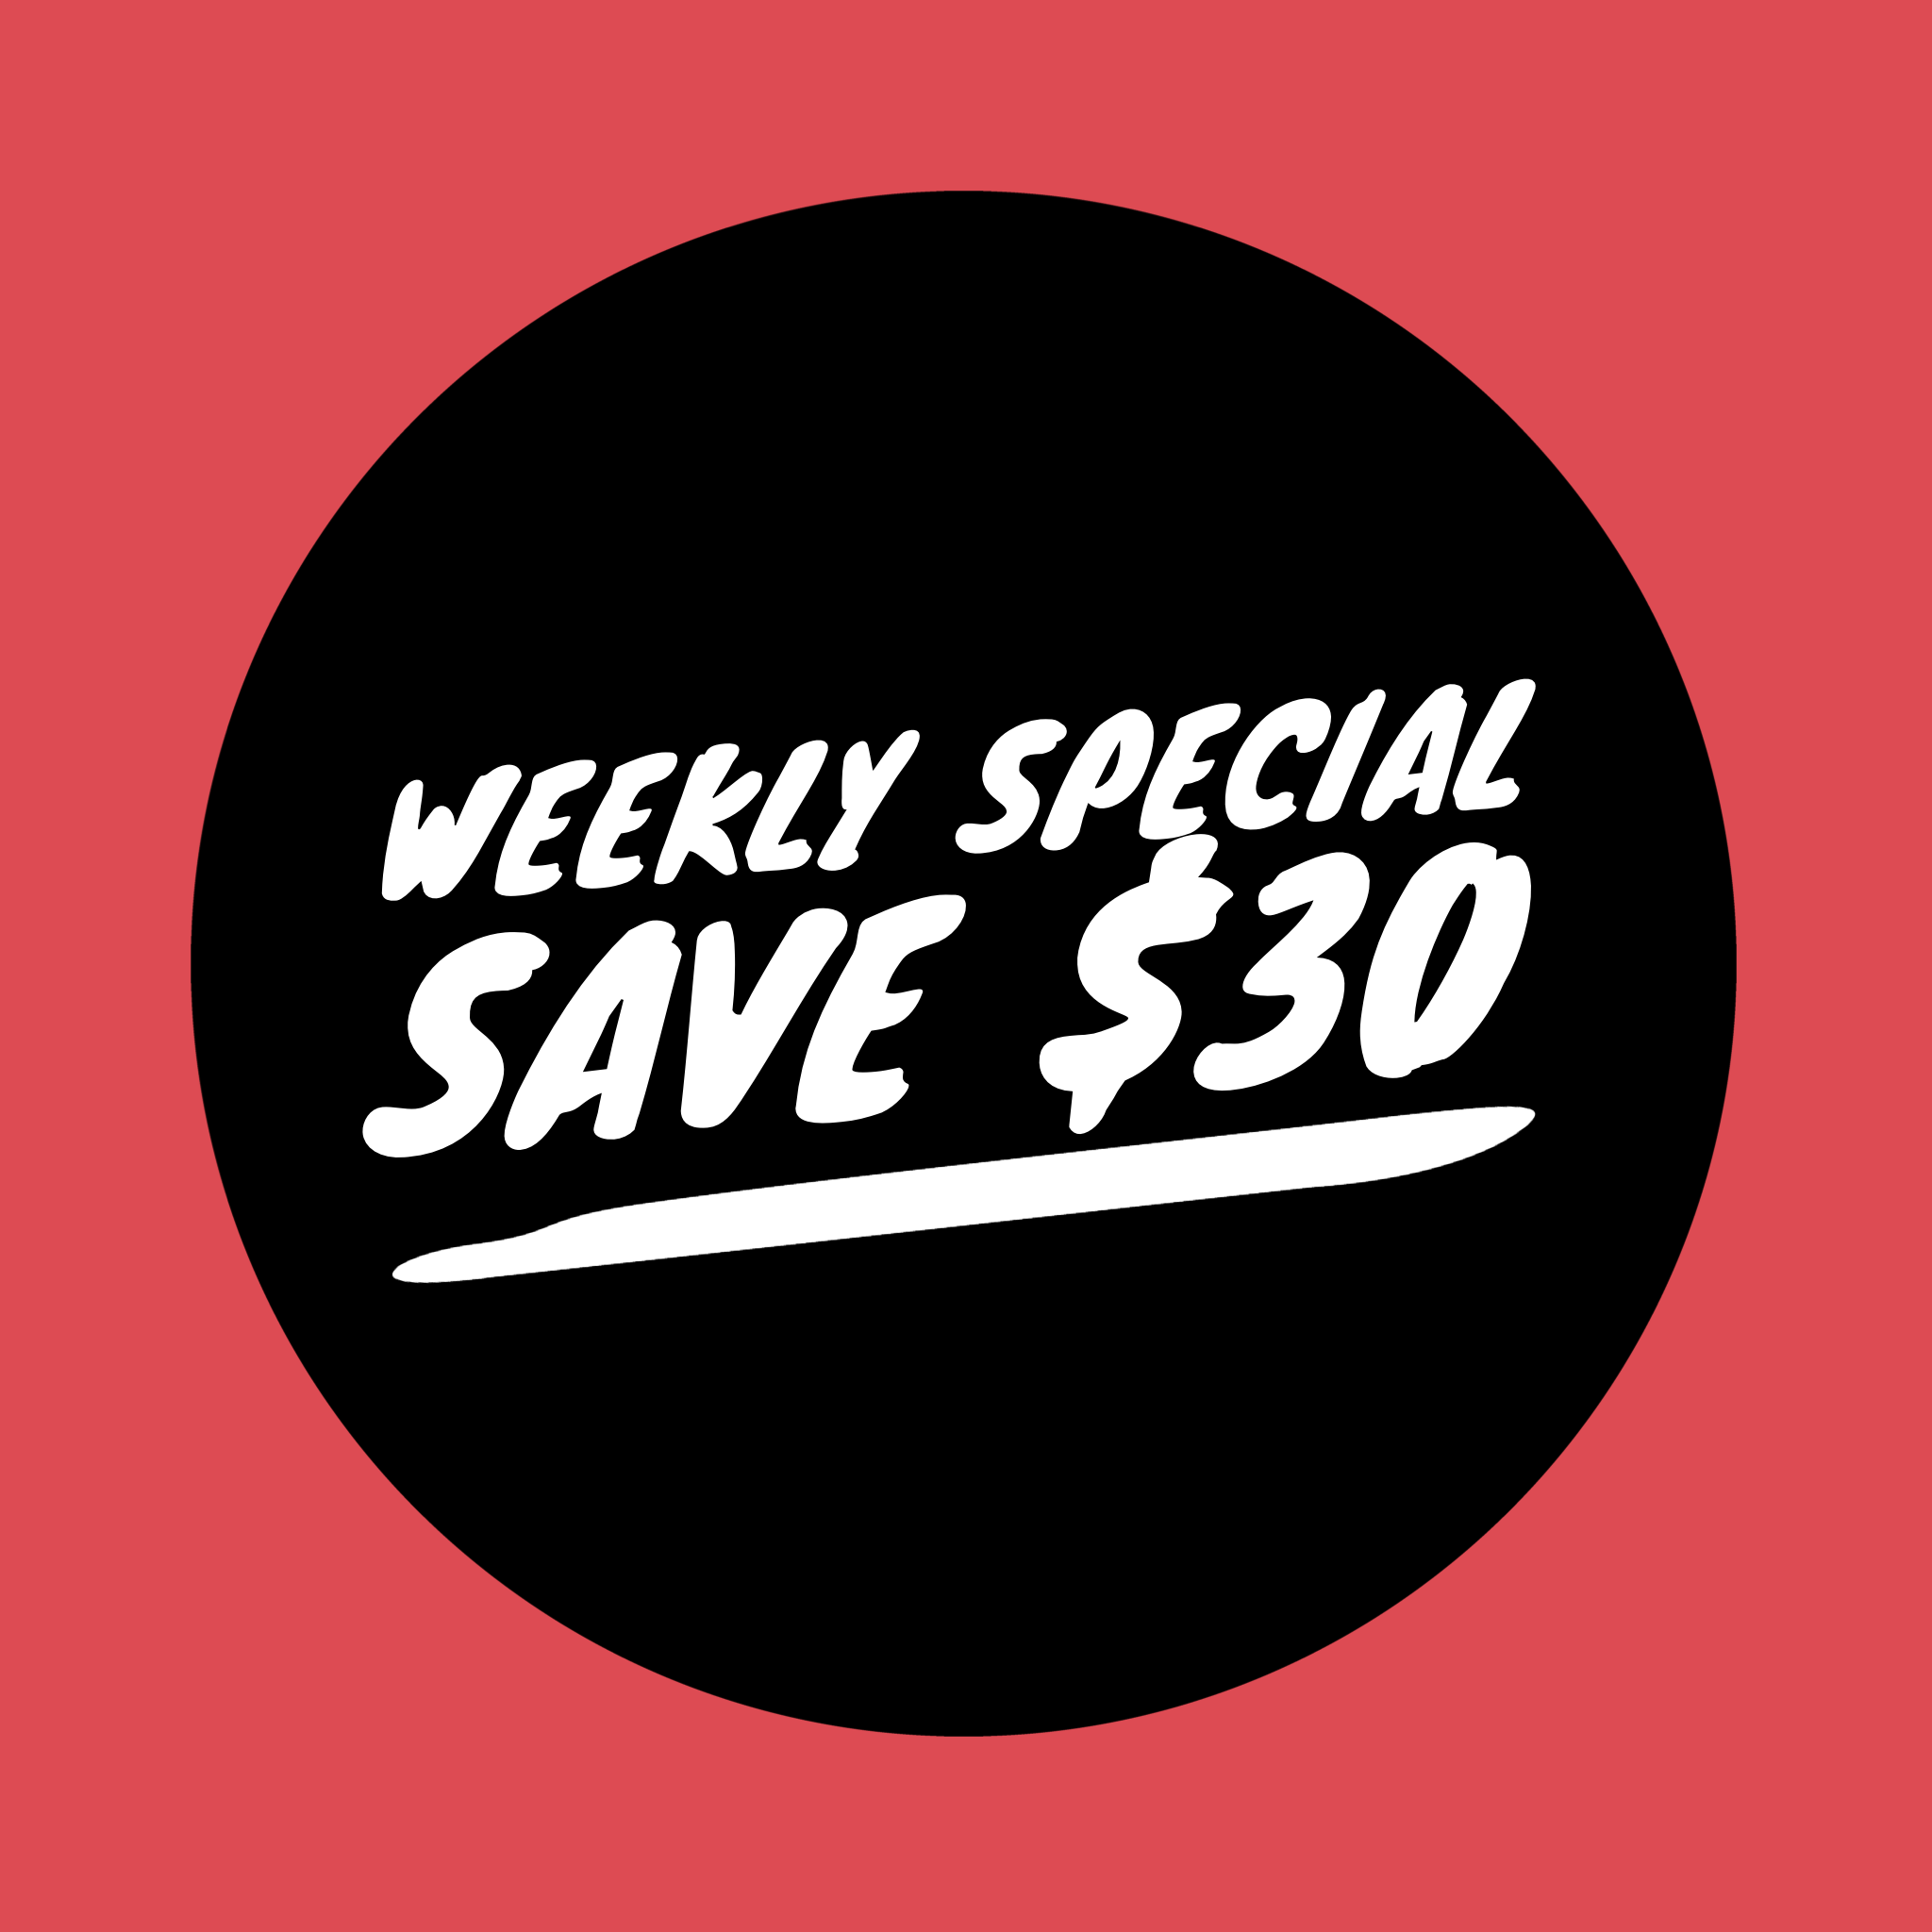 weekly special.png